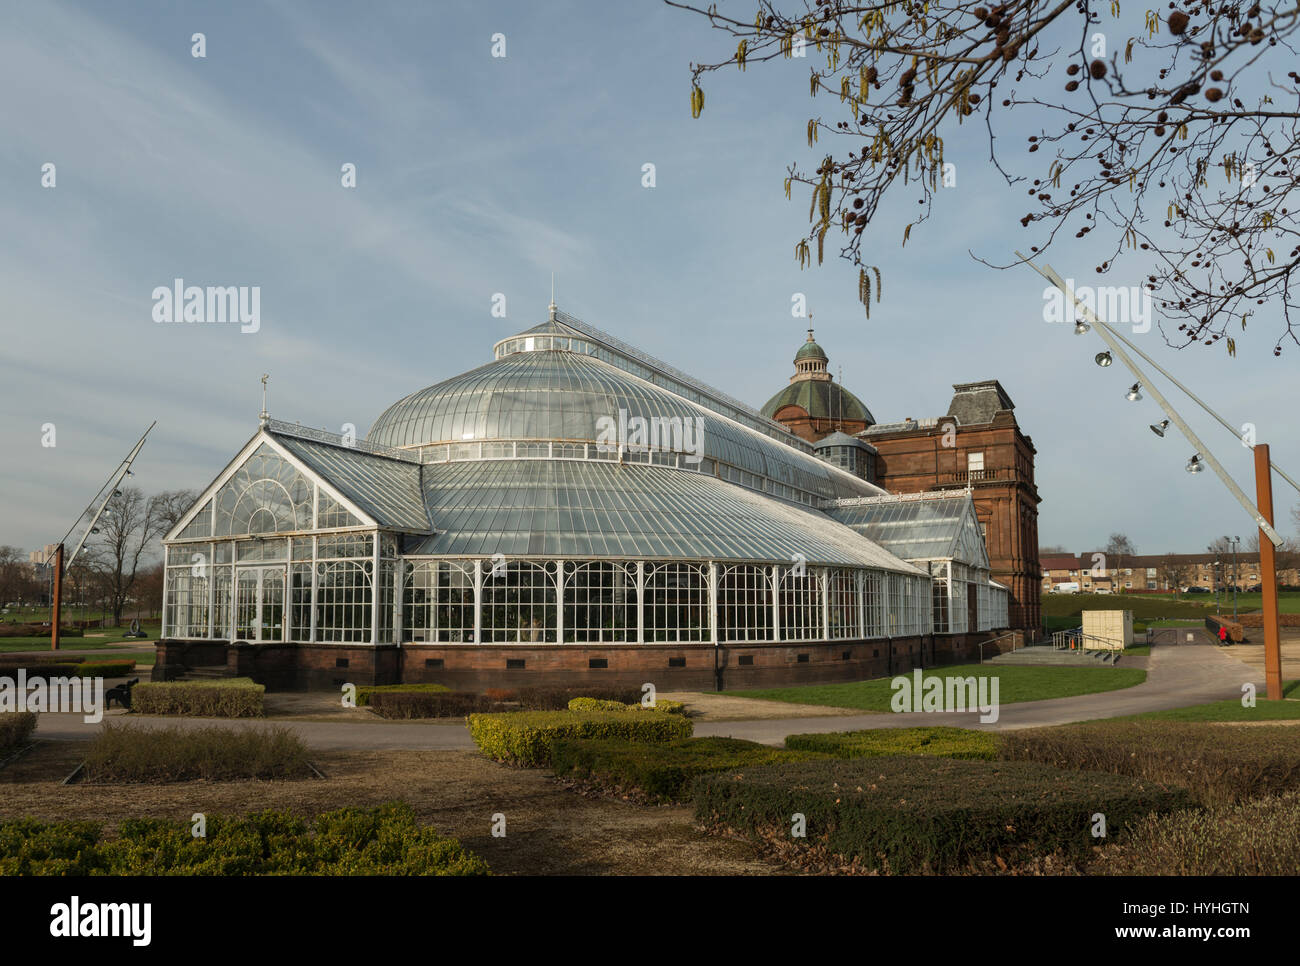 Awesome Glasgow Winter Gardens Gallery Exterior Ideas 3d